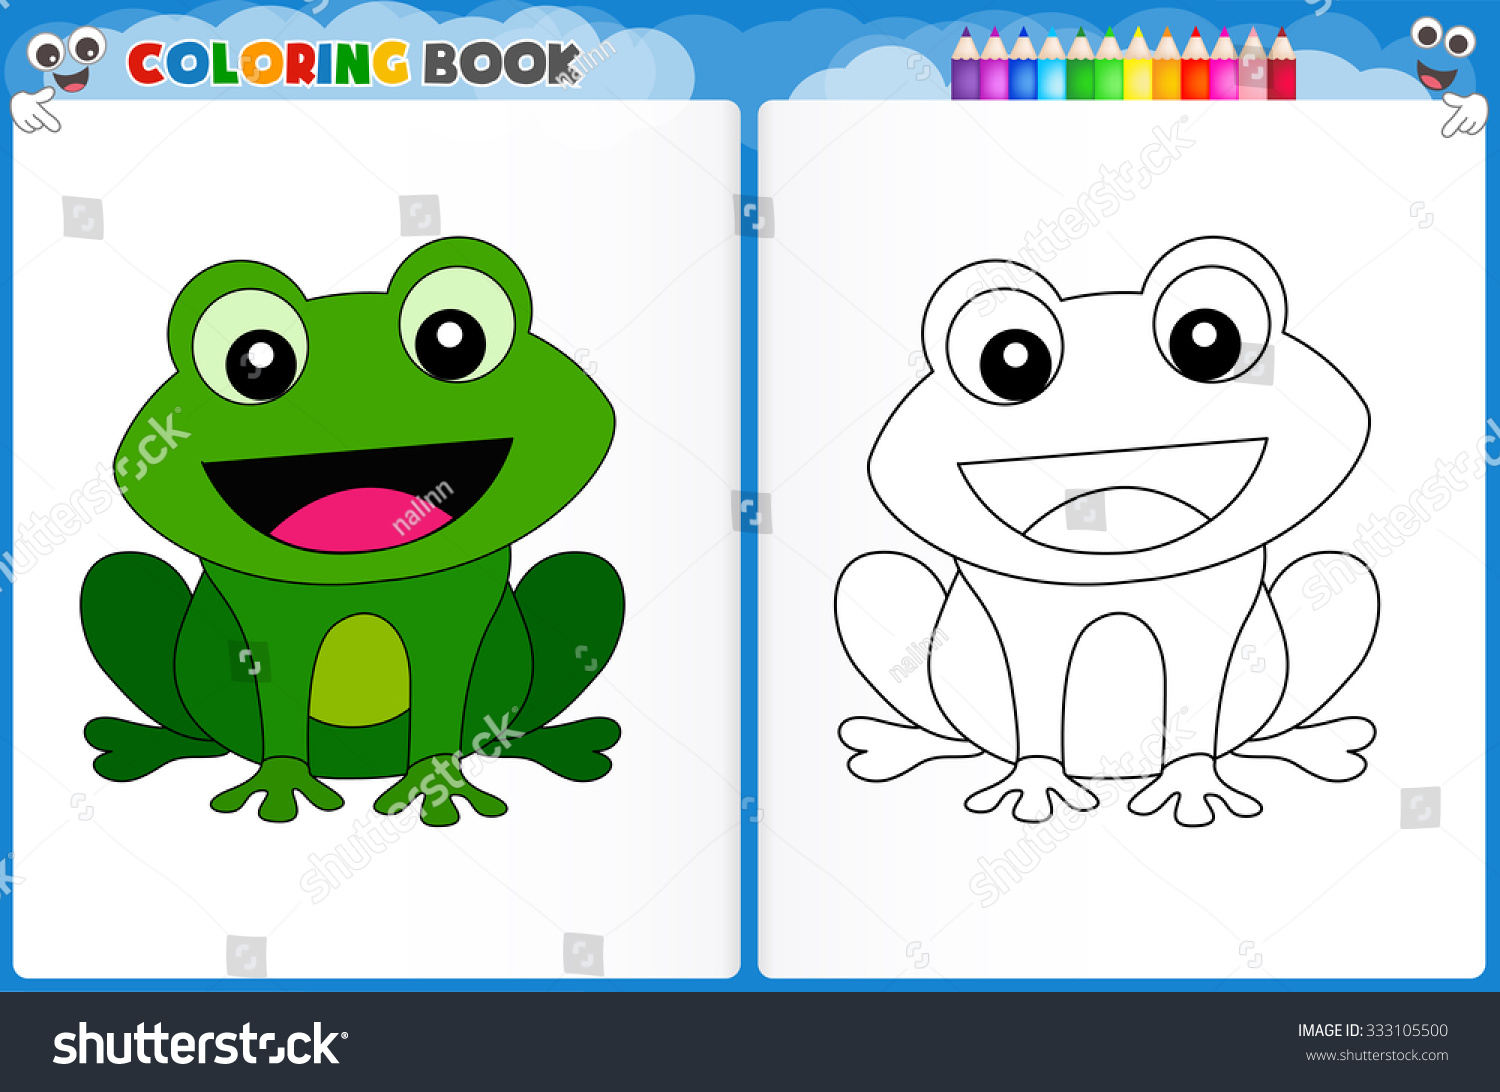 Coloring Page Cute Frog Colorful Sample Stock Illustration 333105500 ...